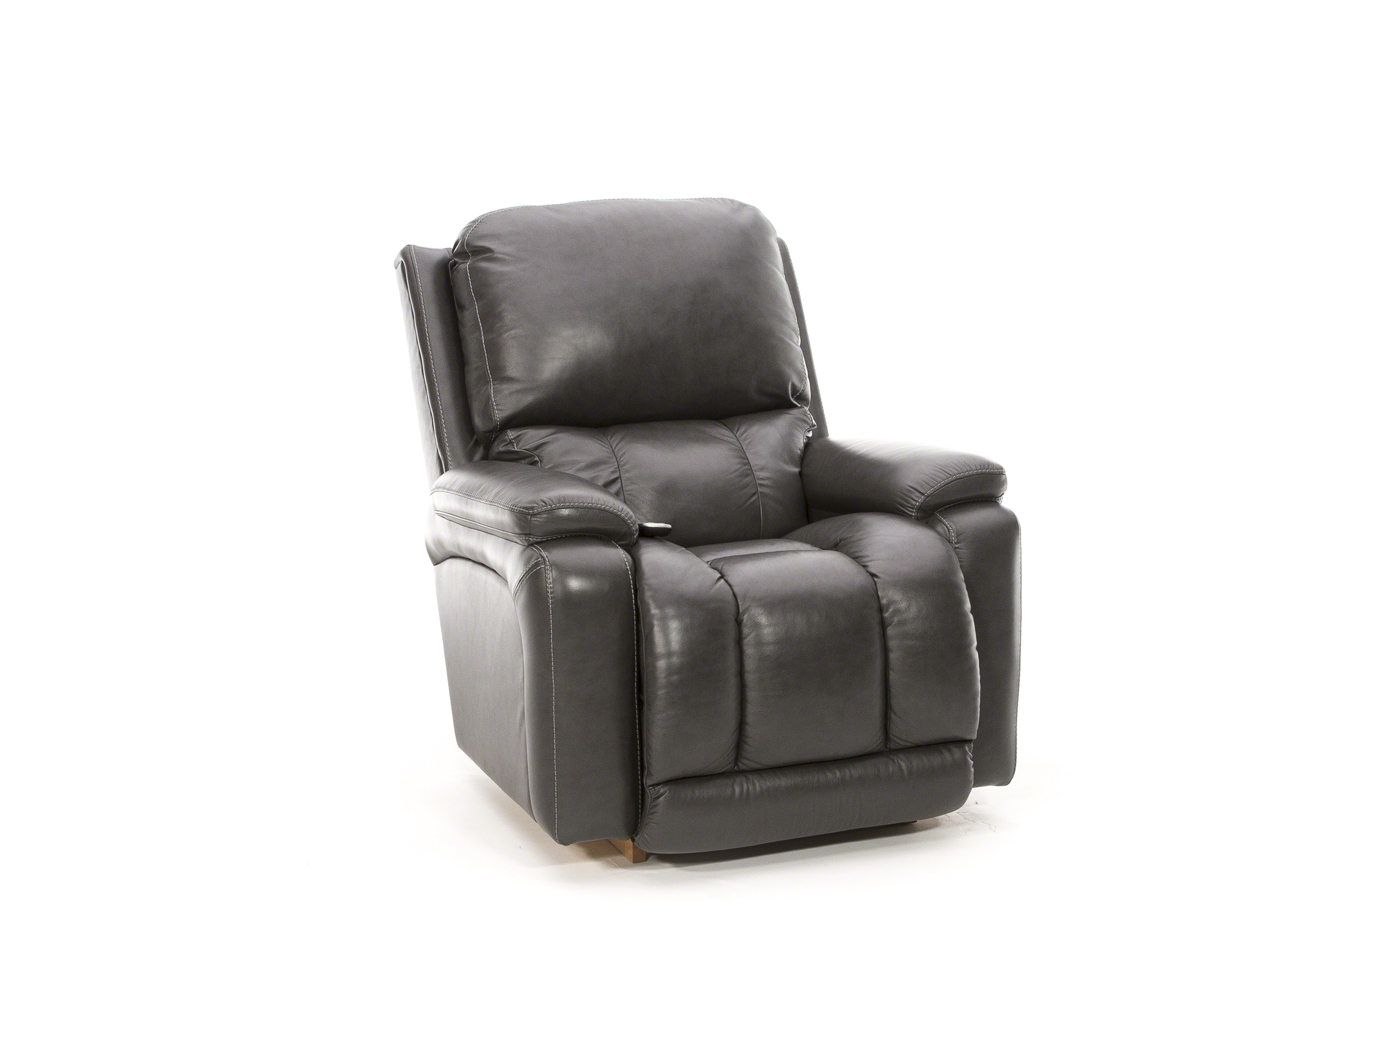 op g sets furniture cheap usm all recliner wid view living n under recliners hei room tif